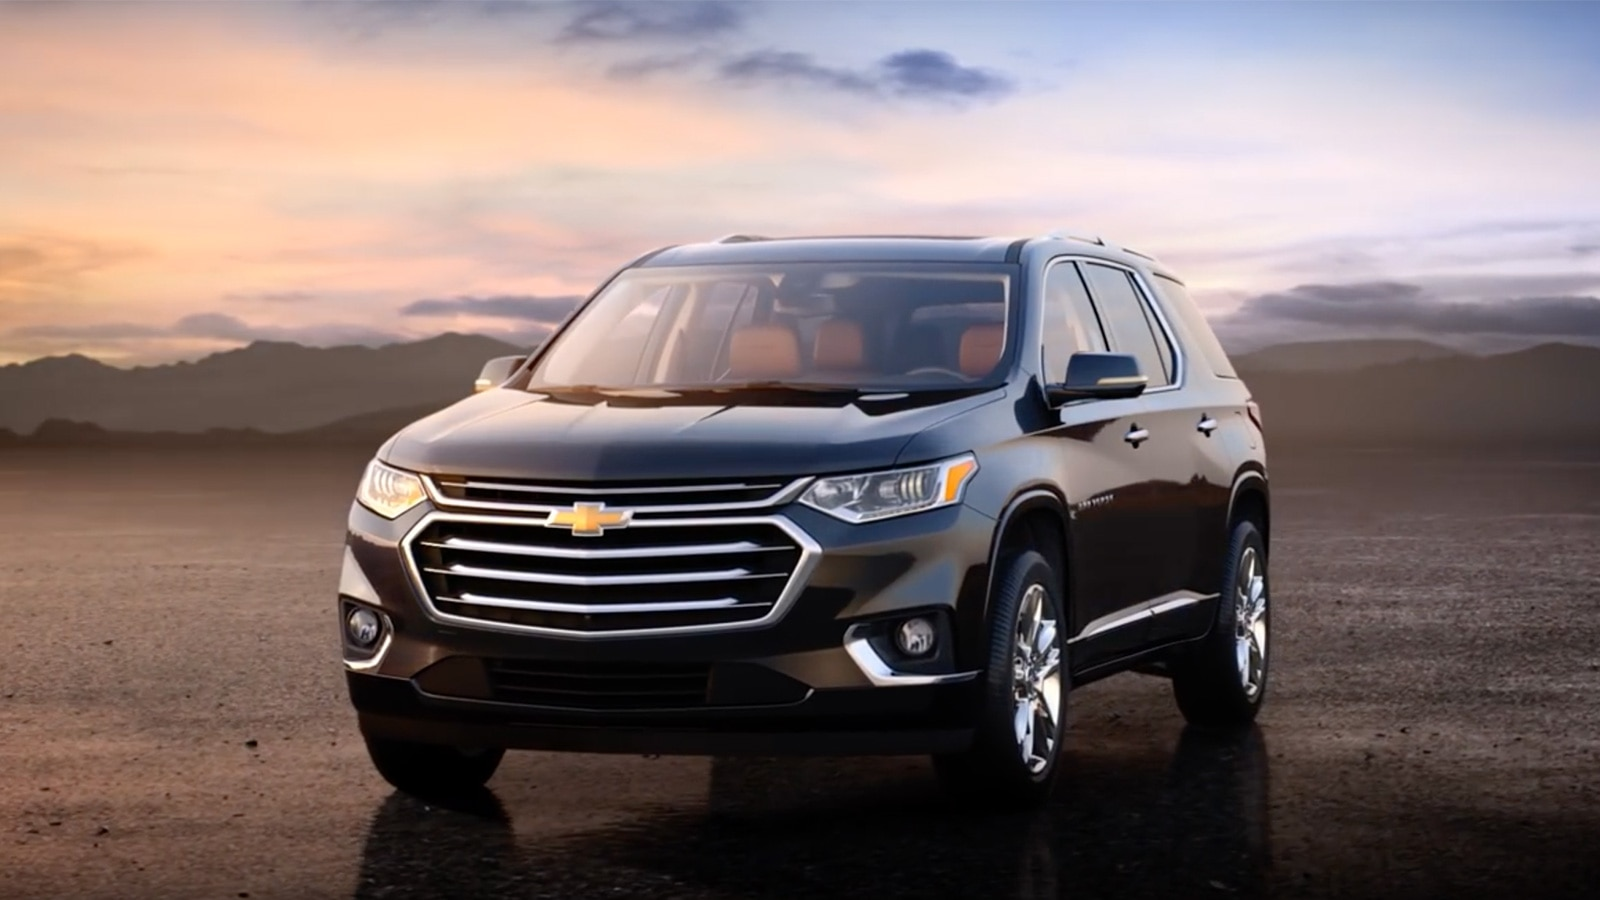 2018 Traverse Midsize SUV: Video